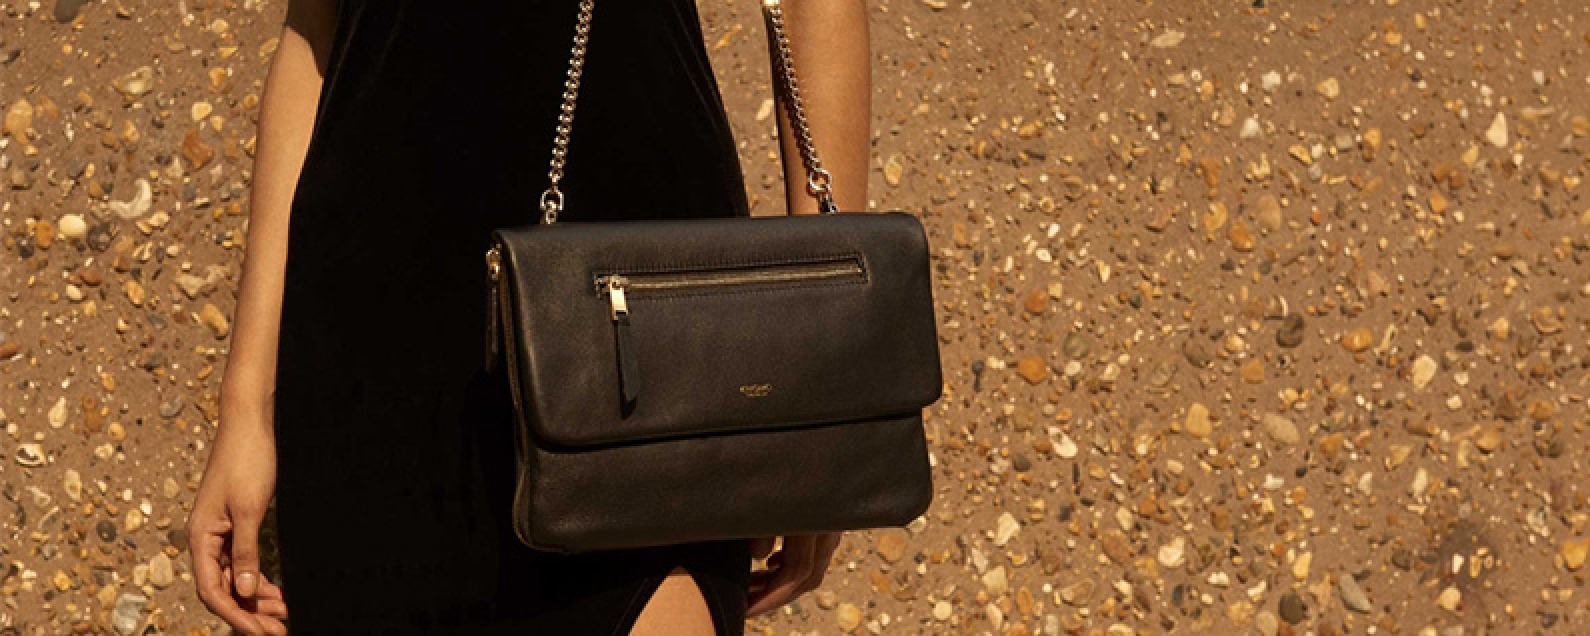 Review: This Fashionable Clutch Doubles as an iPad Bag and Portable Charger